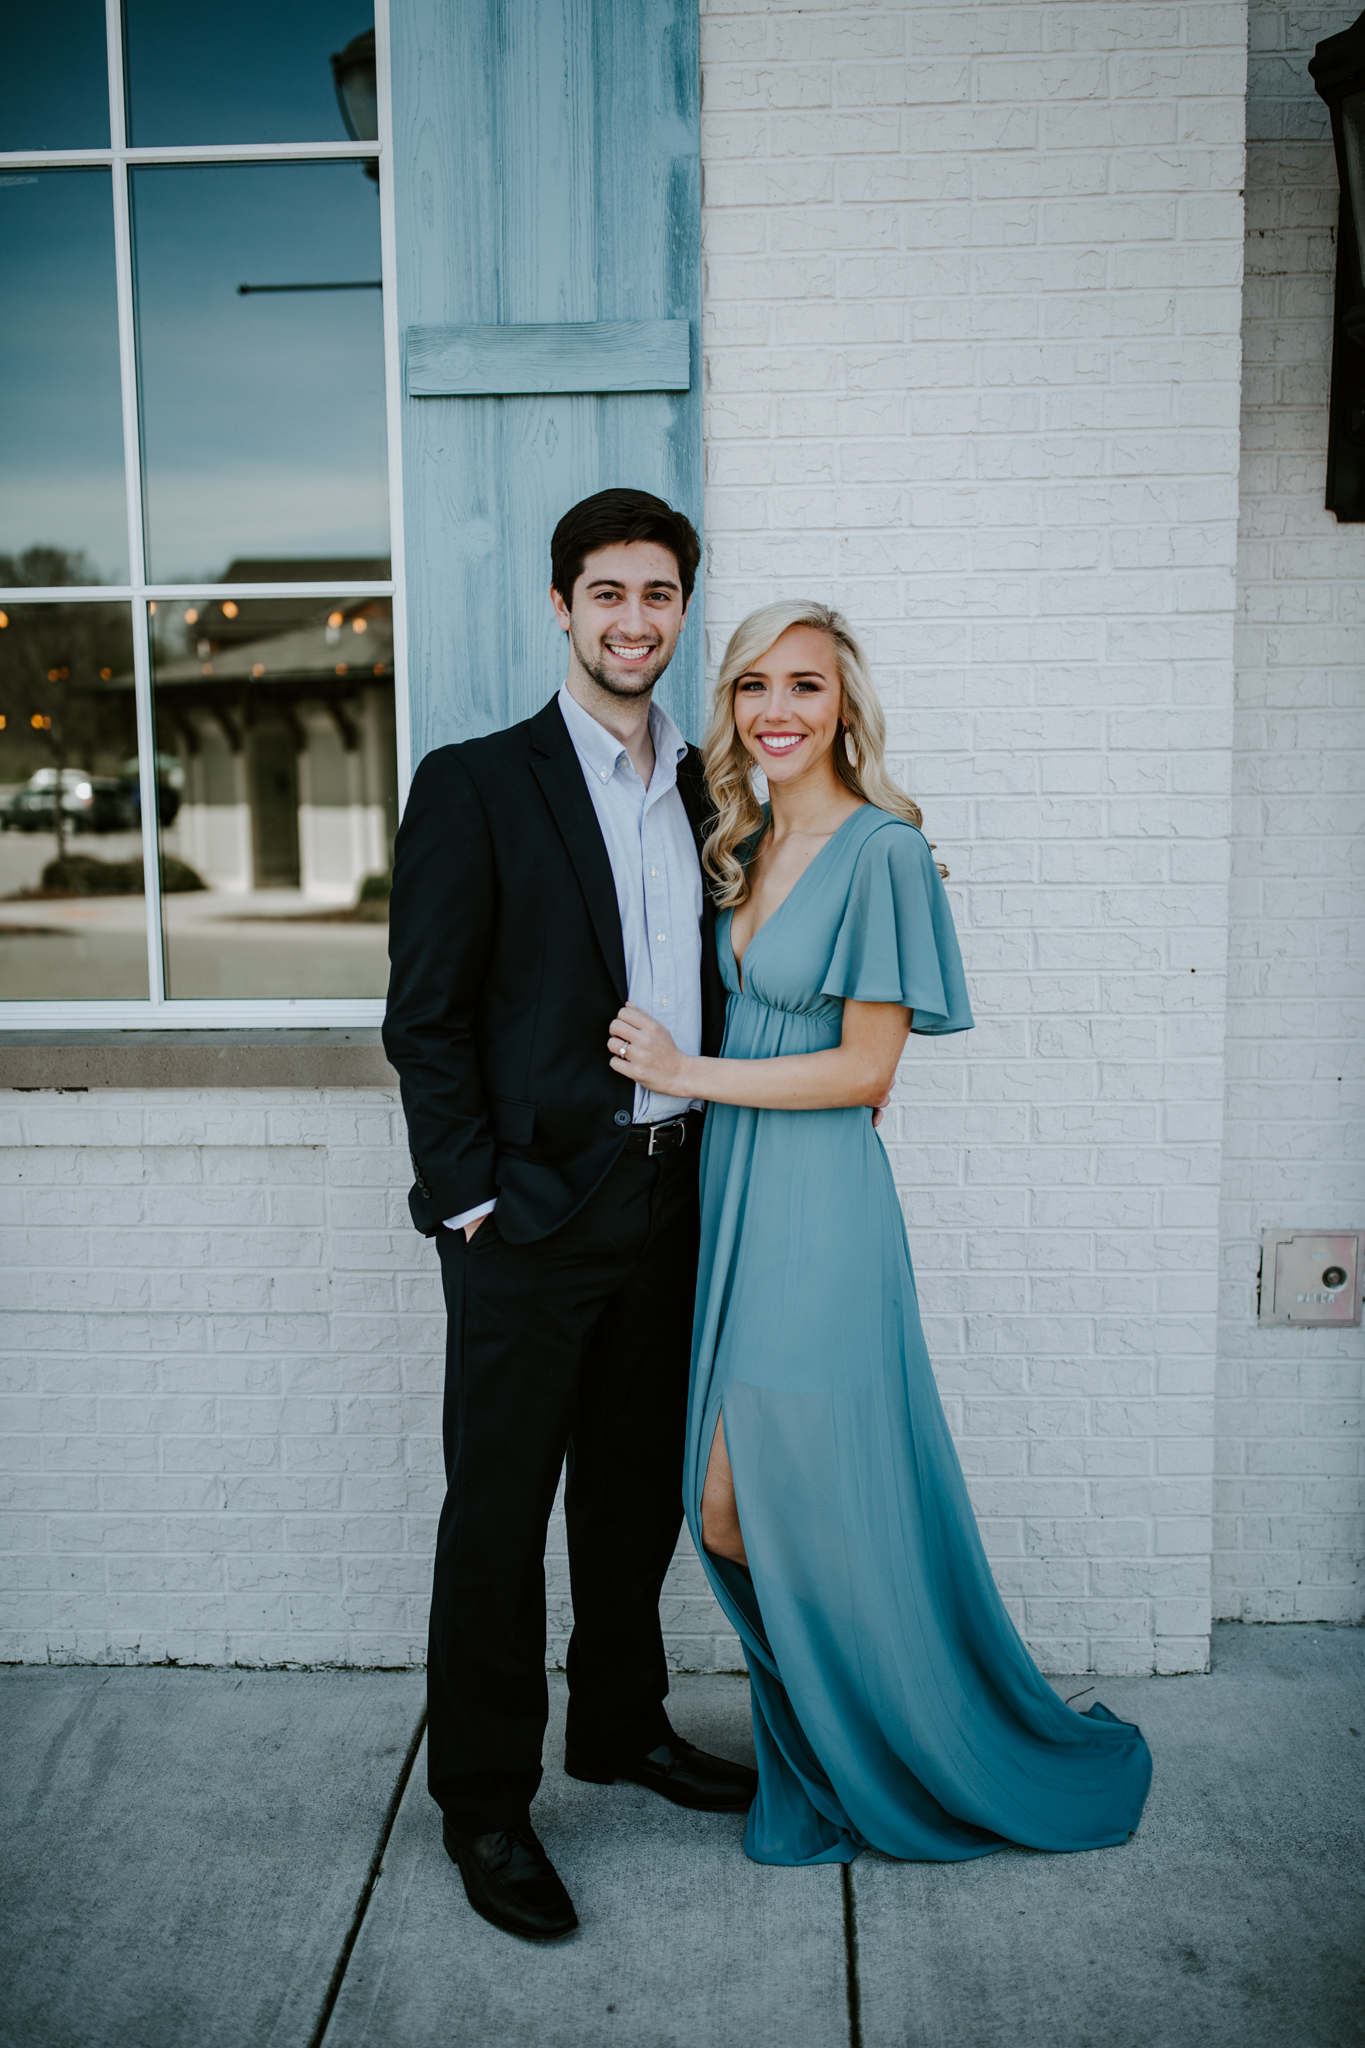 Ali-and-Jake-Chattanooga-Nashville-Tennessee-Wedding-Elopement-Photographer-67.jpg